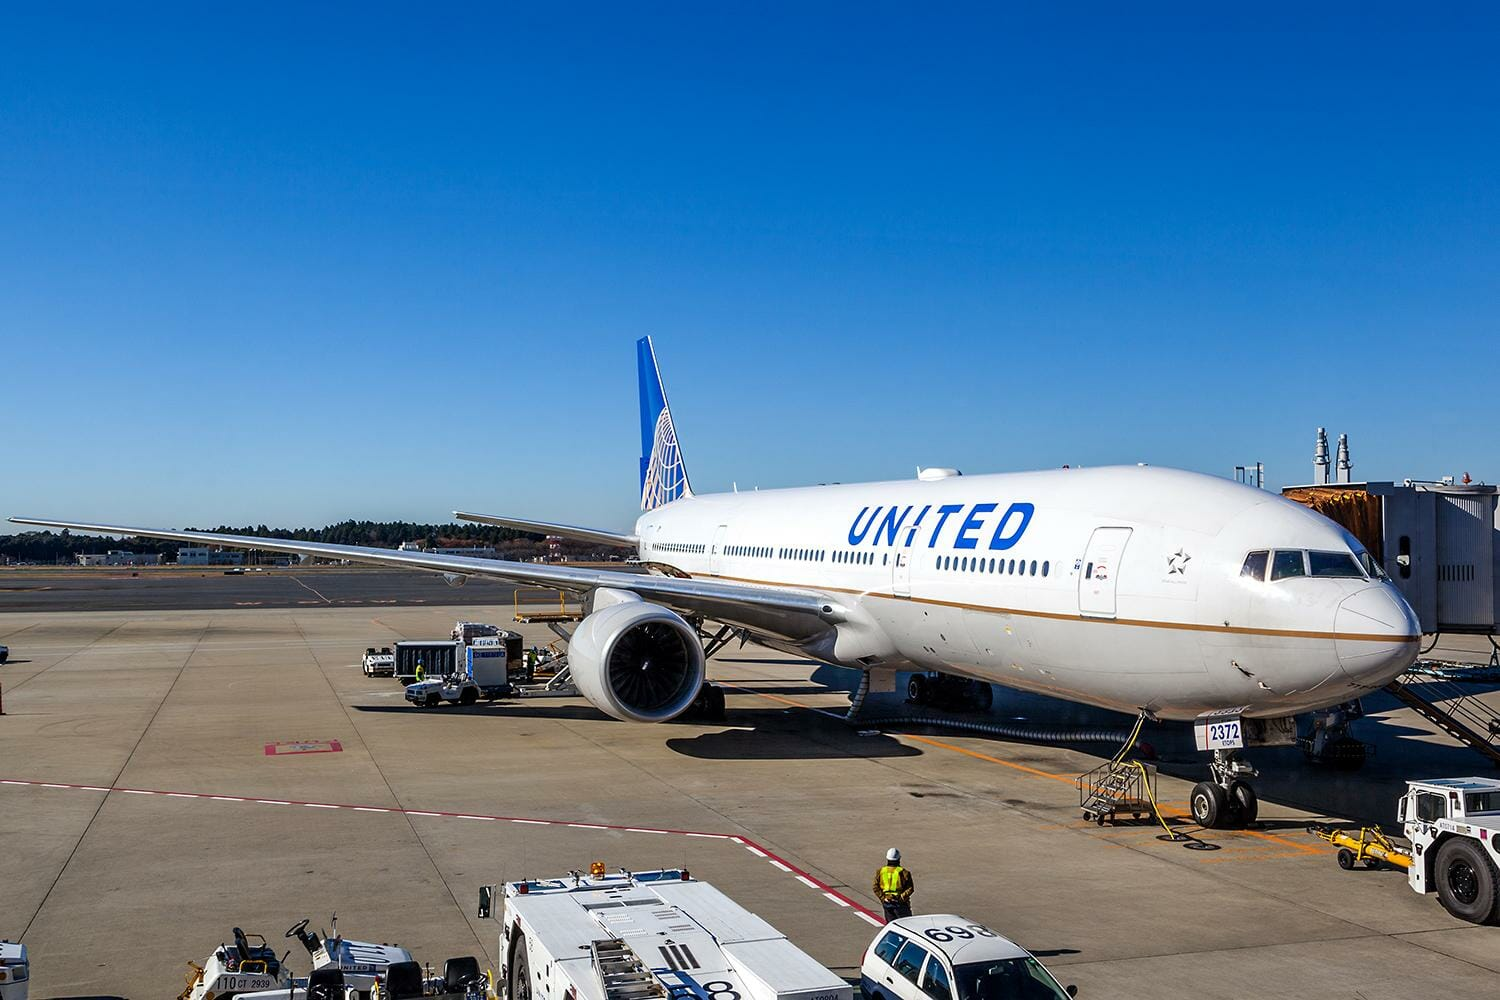 WOKE: United Airlines Says 50% of the Next 5,000 Pilots They Train Will be Black Women or People of Color